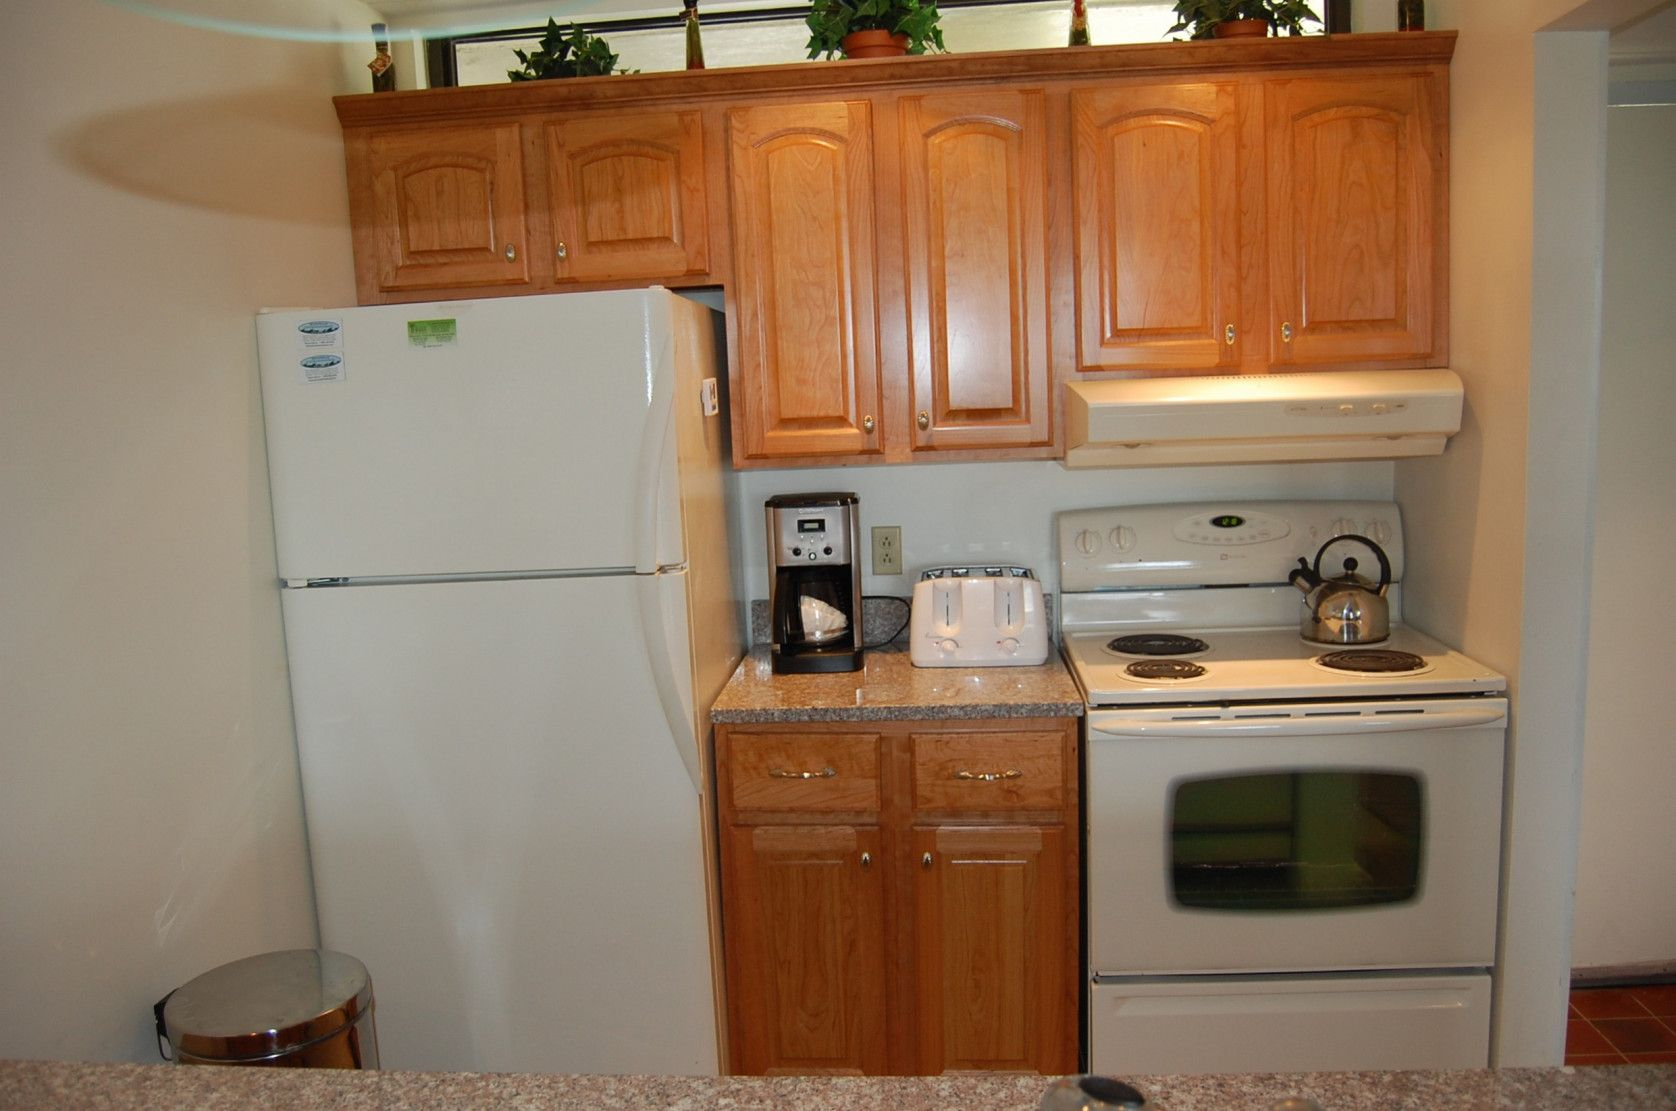 55+ Sears Cabinet Refacing Reviews - Kitchen Decorating ...